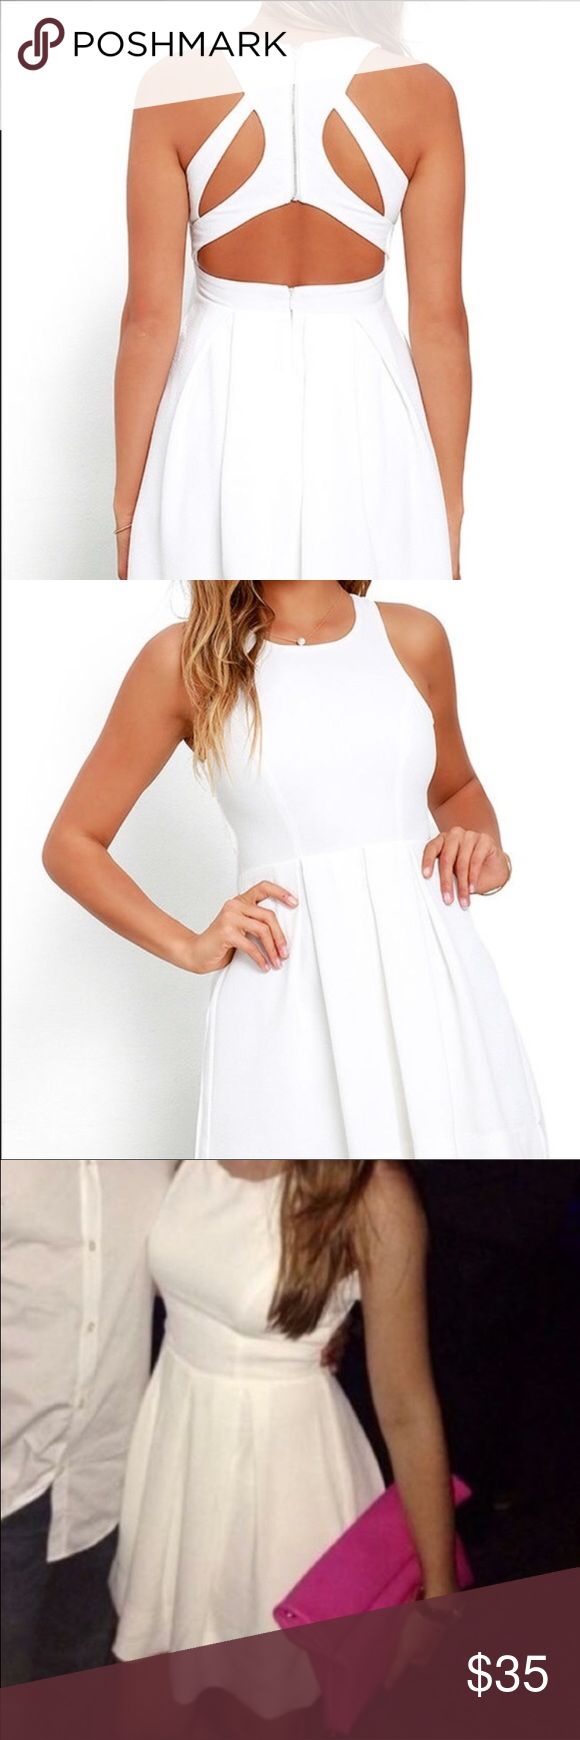 White skater dress Gorgeous white skater dress with cut outs on the back. Super flattering dress! From Lulu's.com Lulu's Dresses Mini